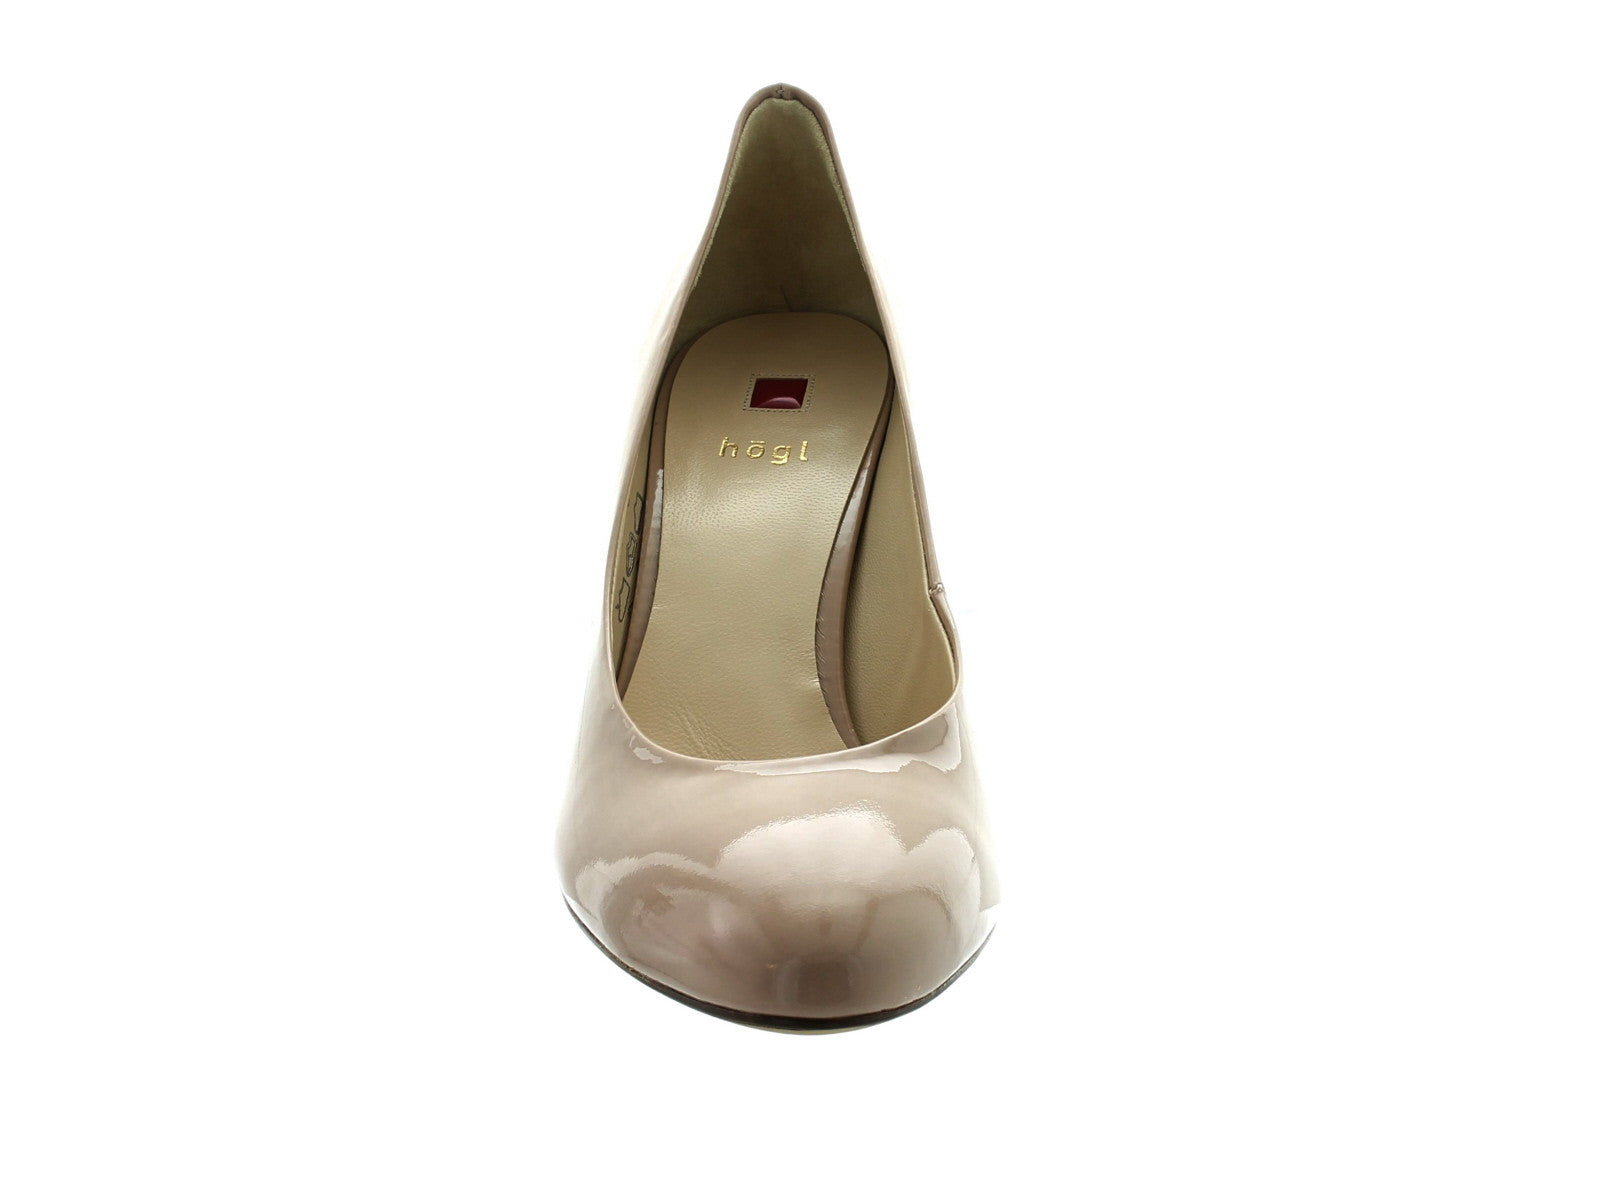 Hogl 6004 in Nude Patent front view